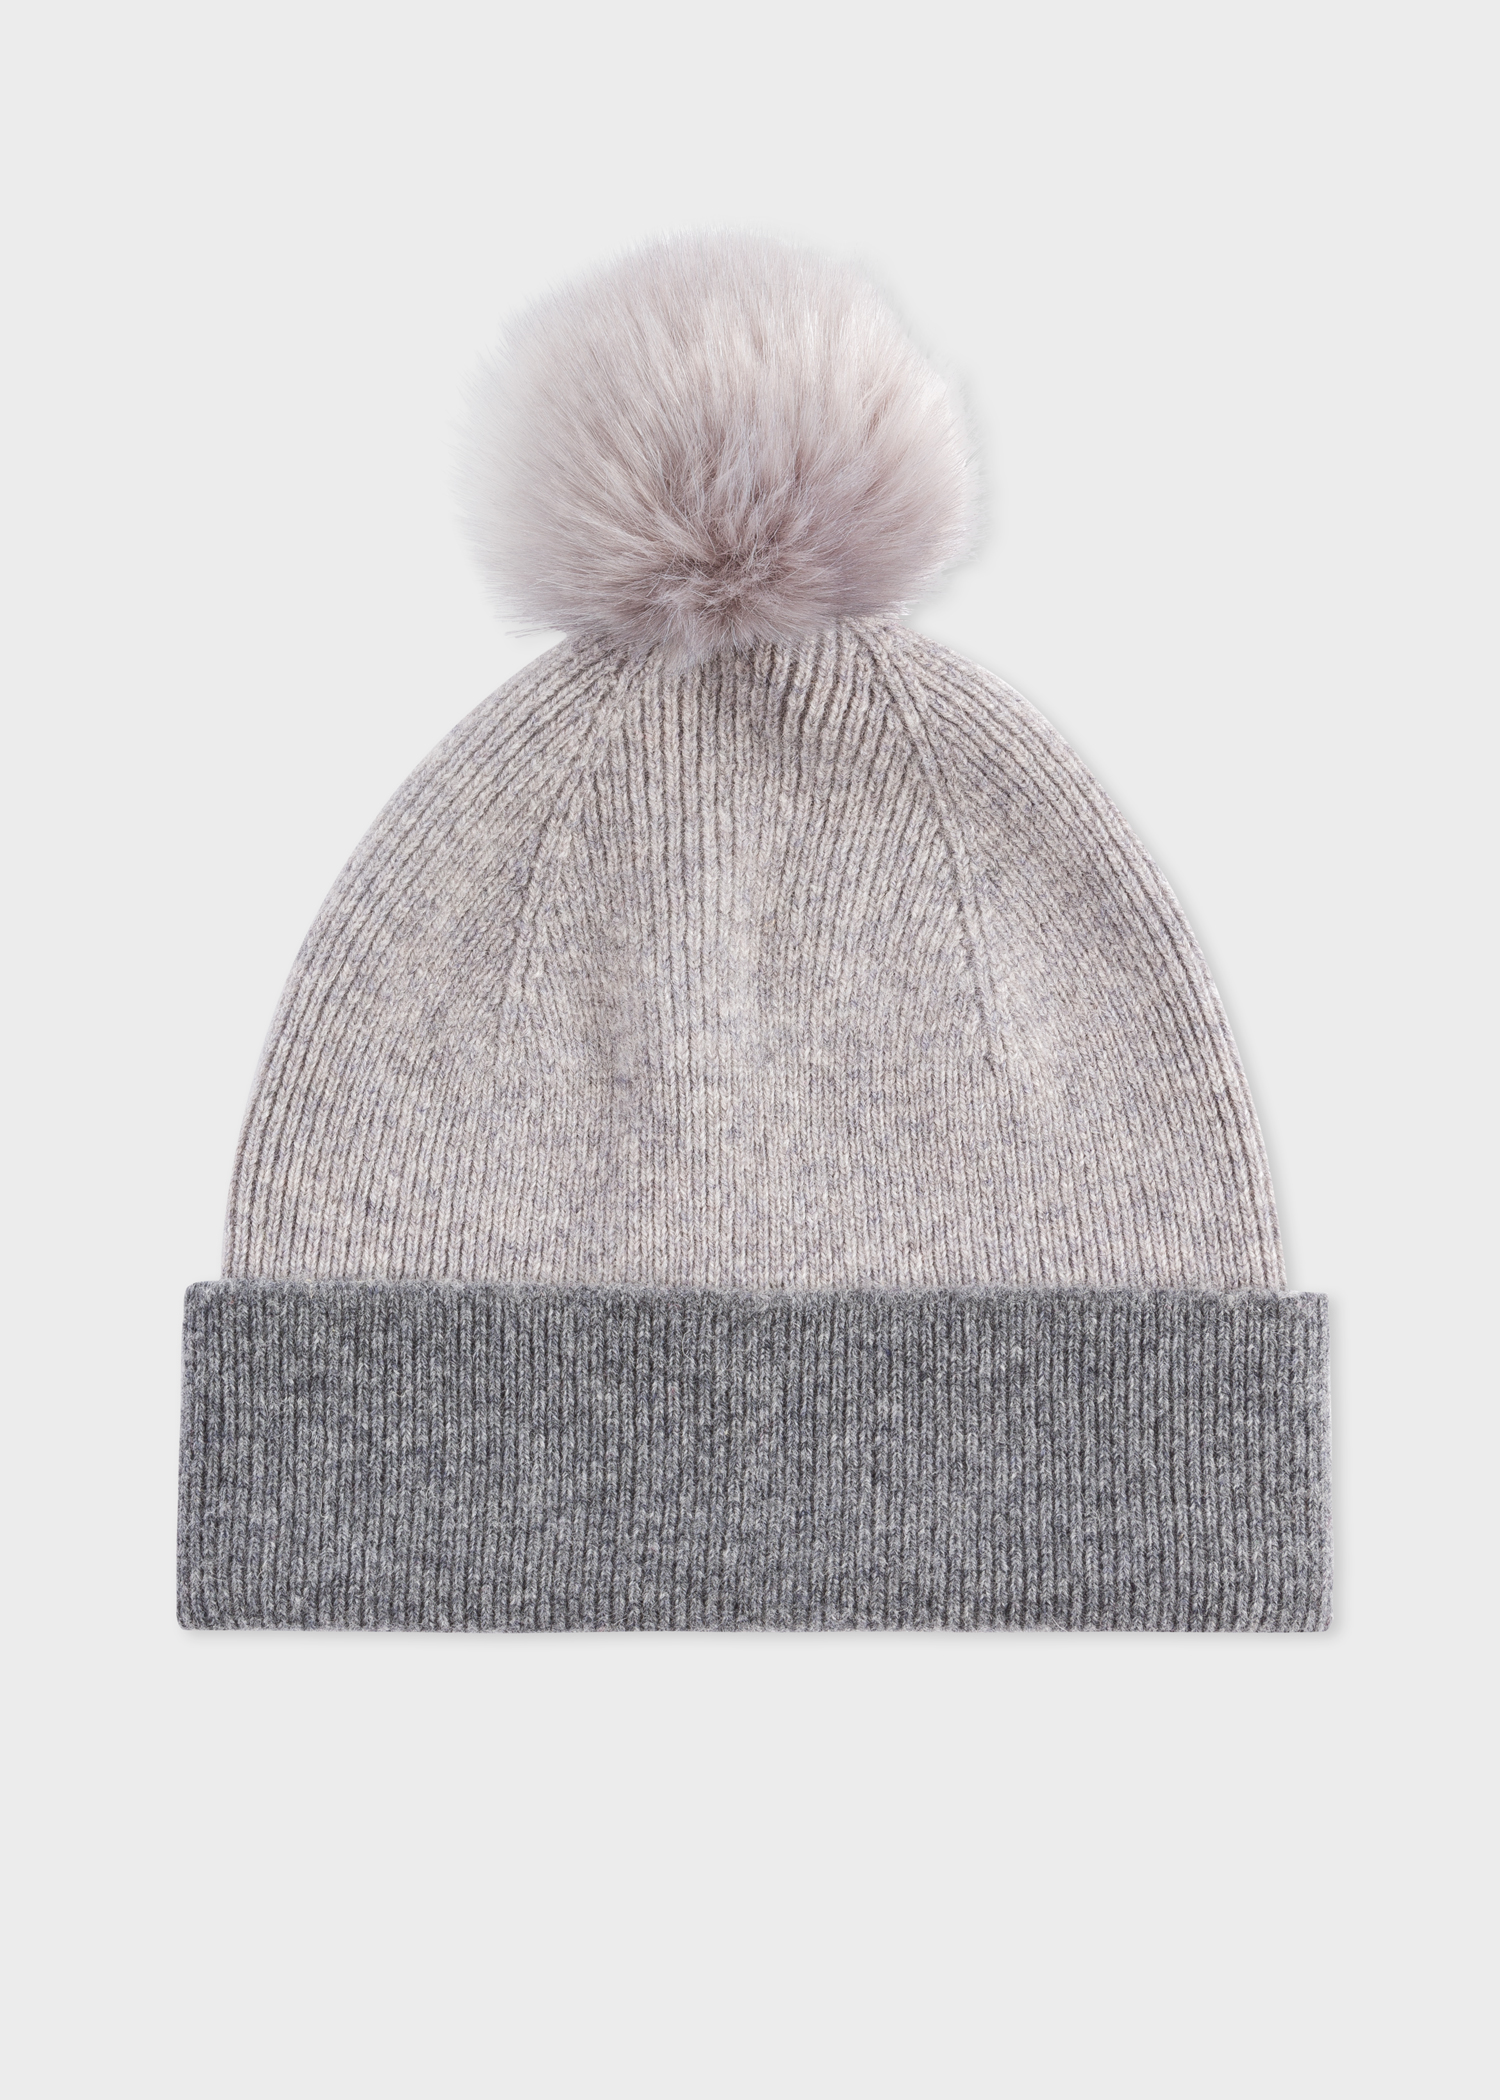 95561b80 Women's Light Grey Pom-Pom Wool Beanie Hat - Paul Smith Asia